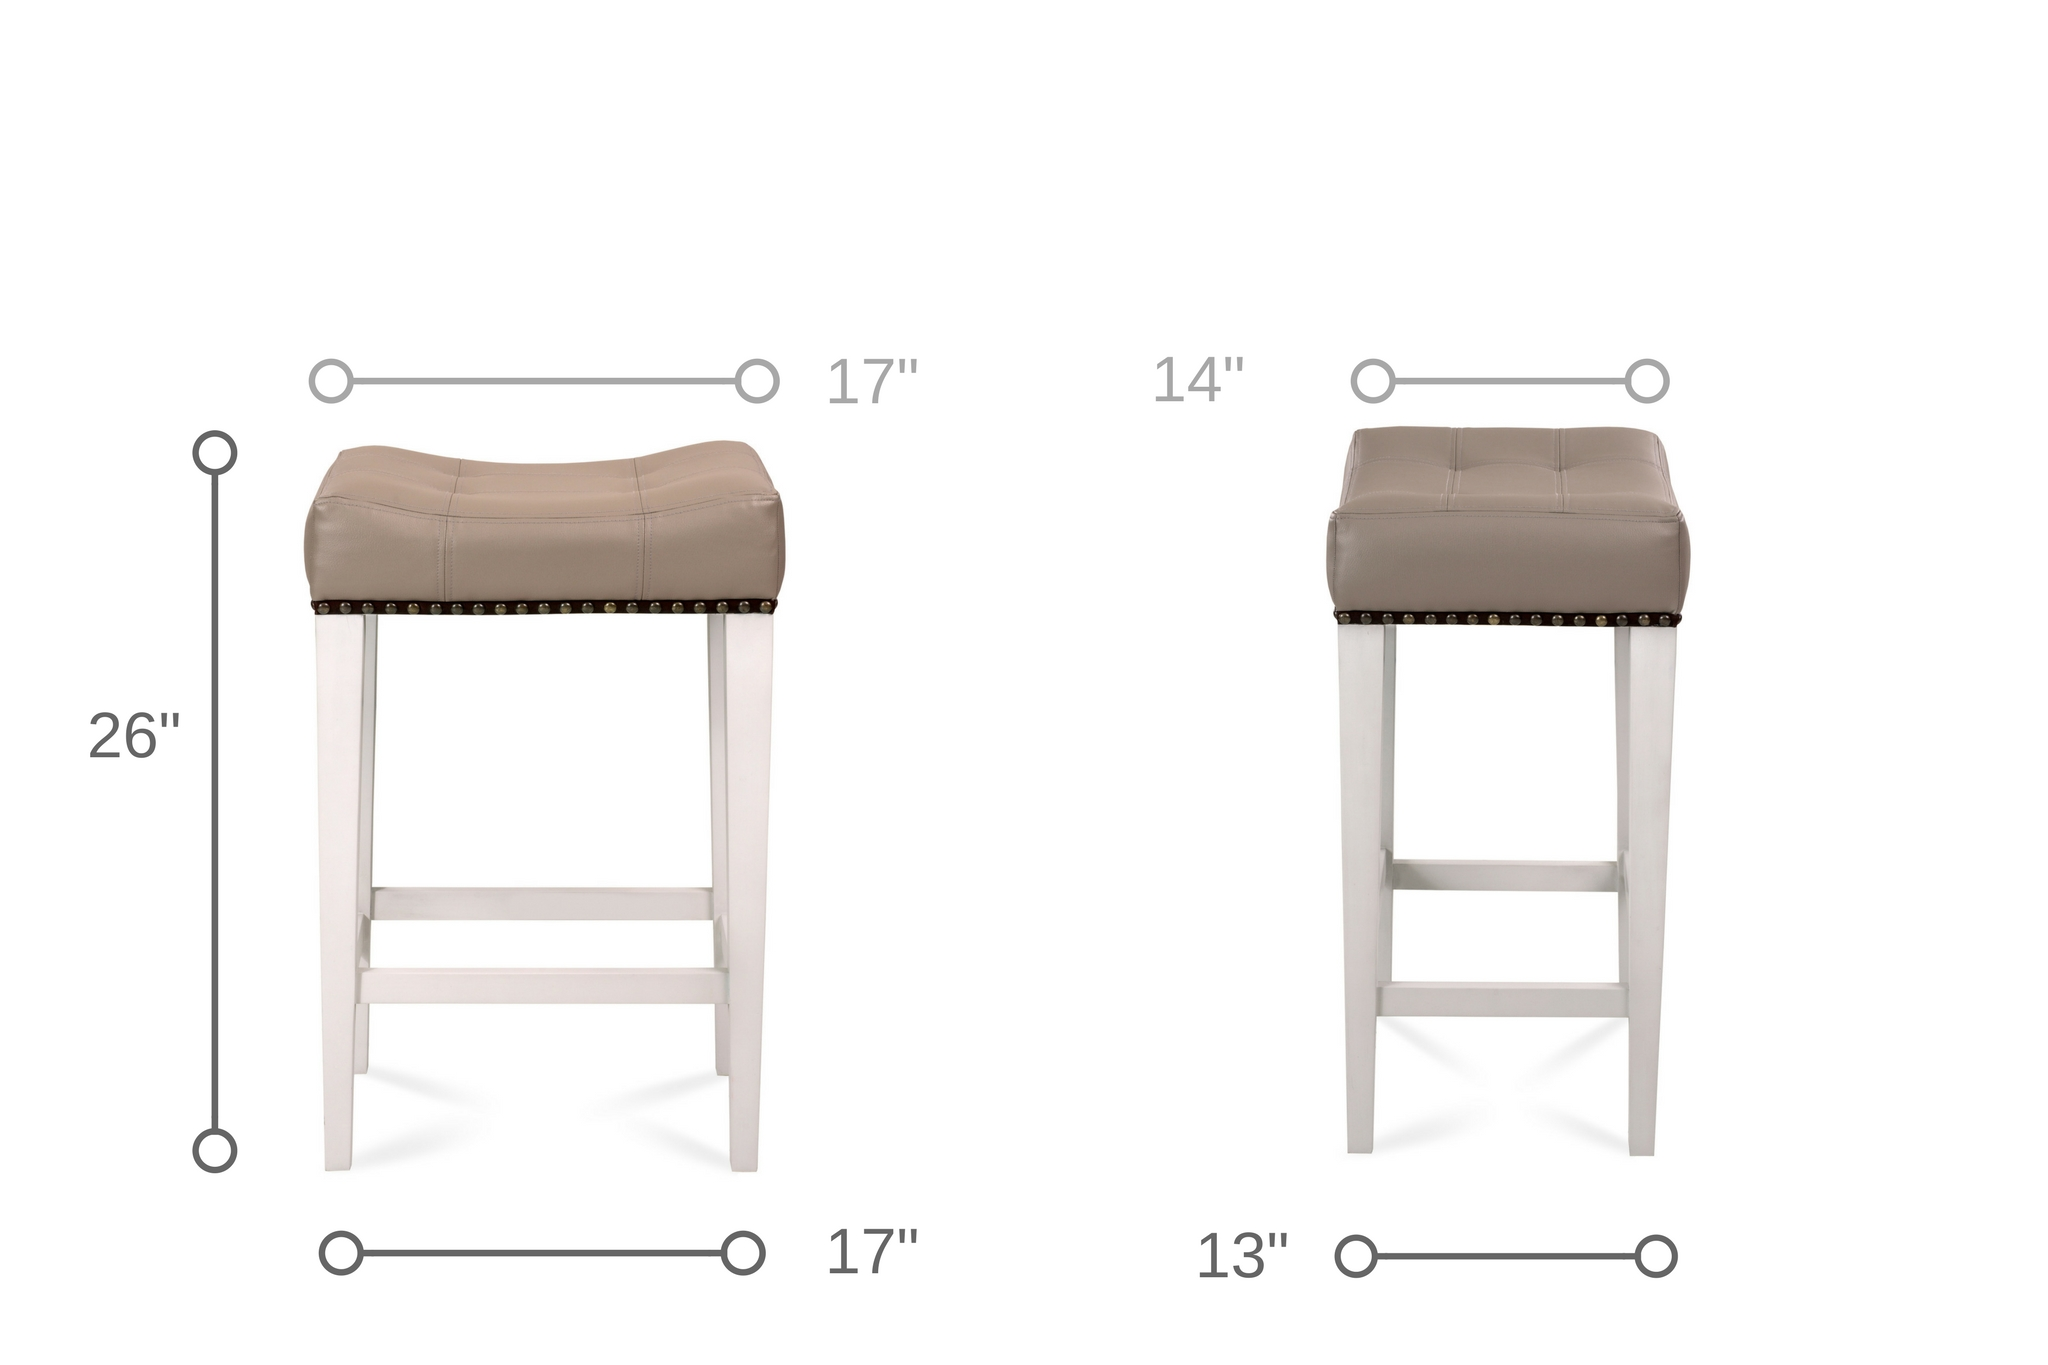 Dowel Furniture Cocktail Counter Stool Dimensions